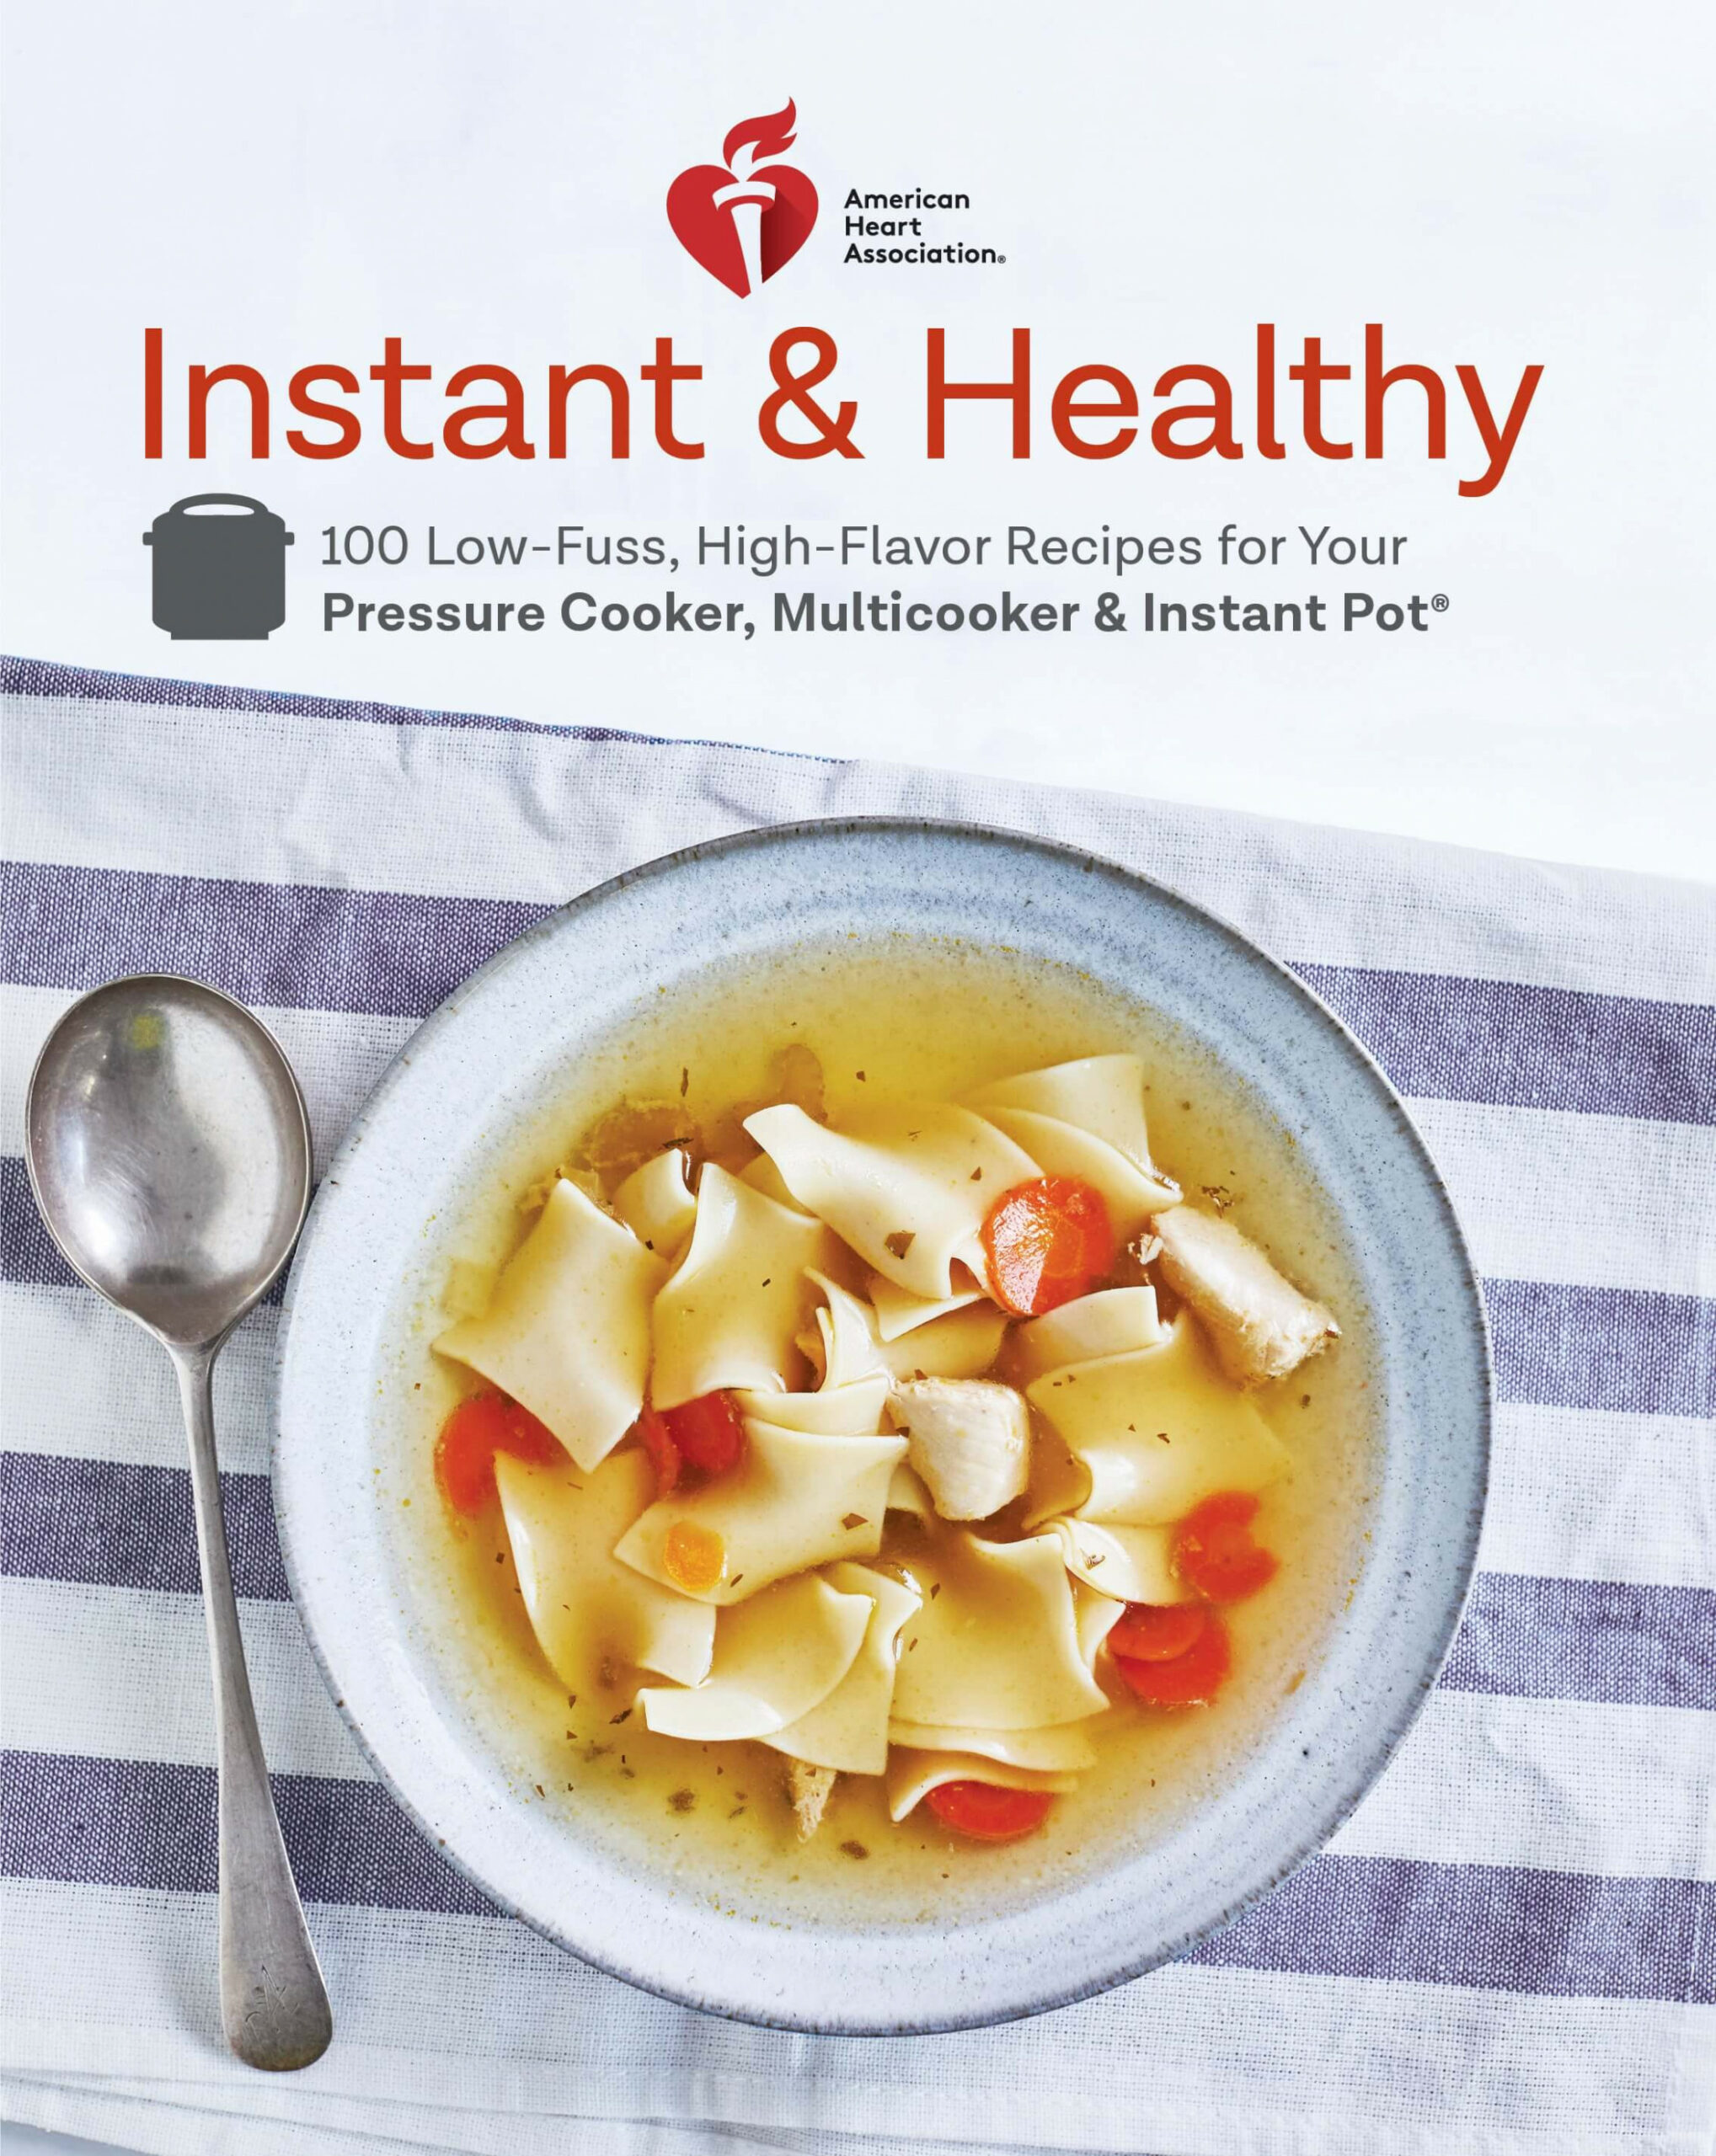 Instant & Healthy | American Heart Association - healthy recipes in pressure cooker